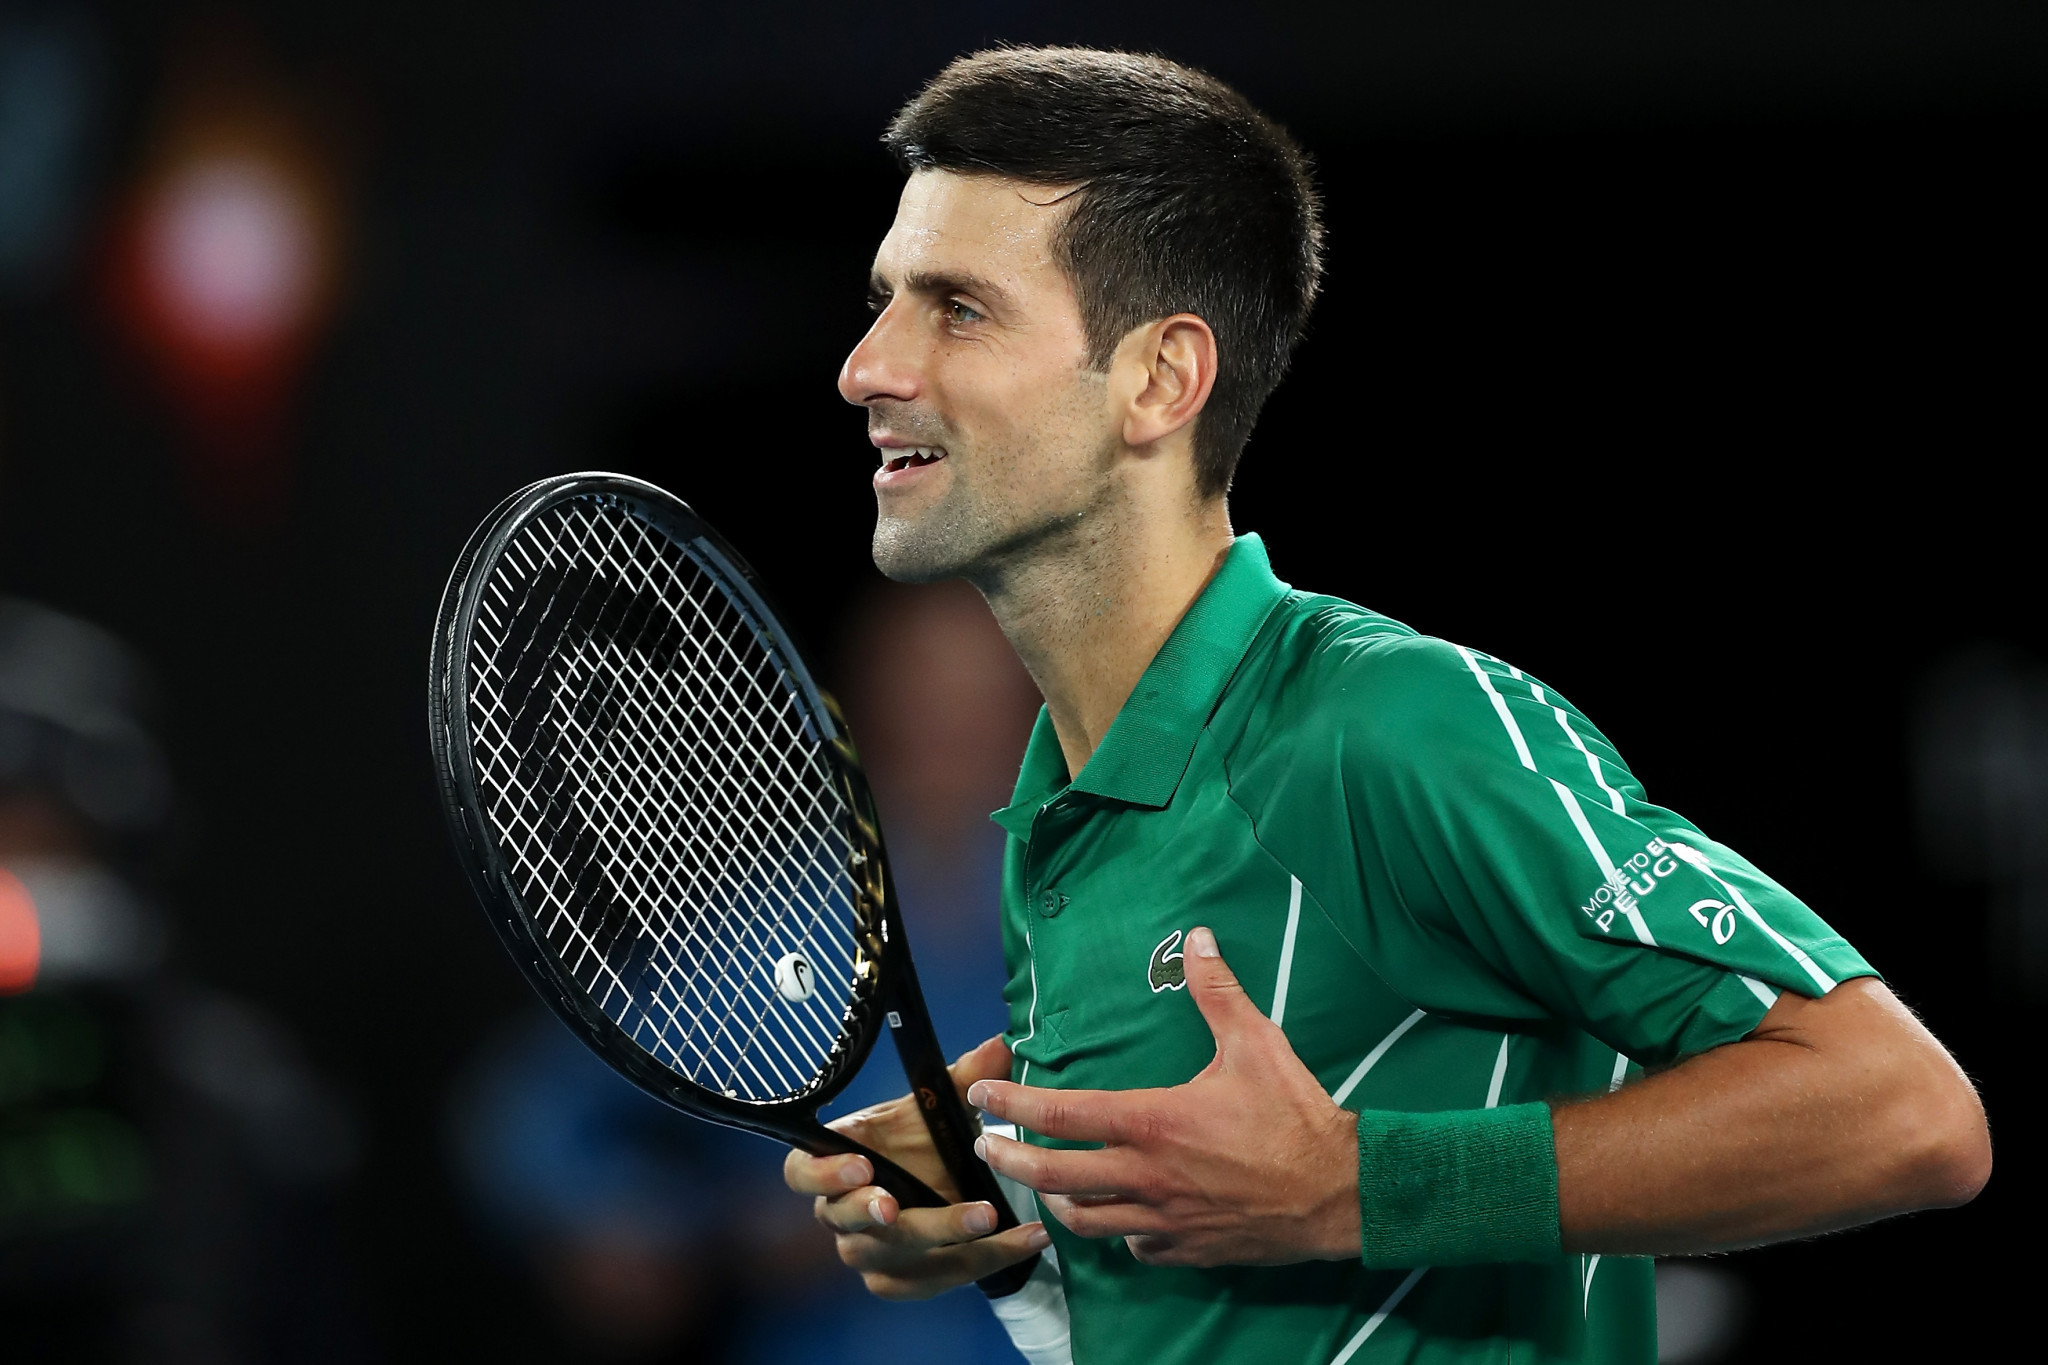 Novak Djokovic went through in four sets ©Getty Images